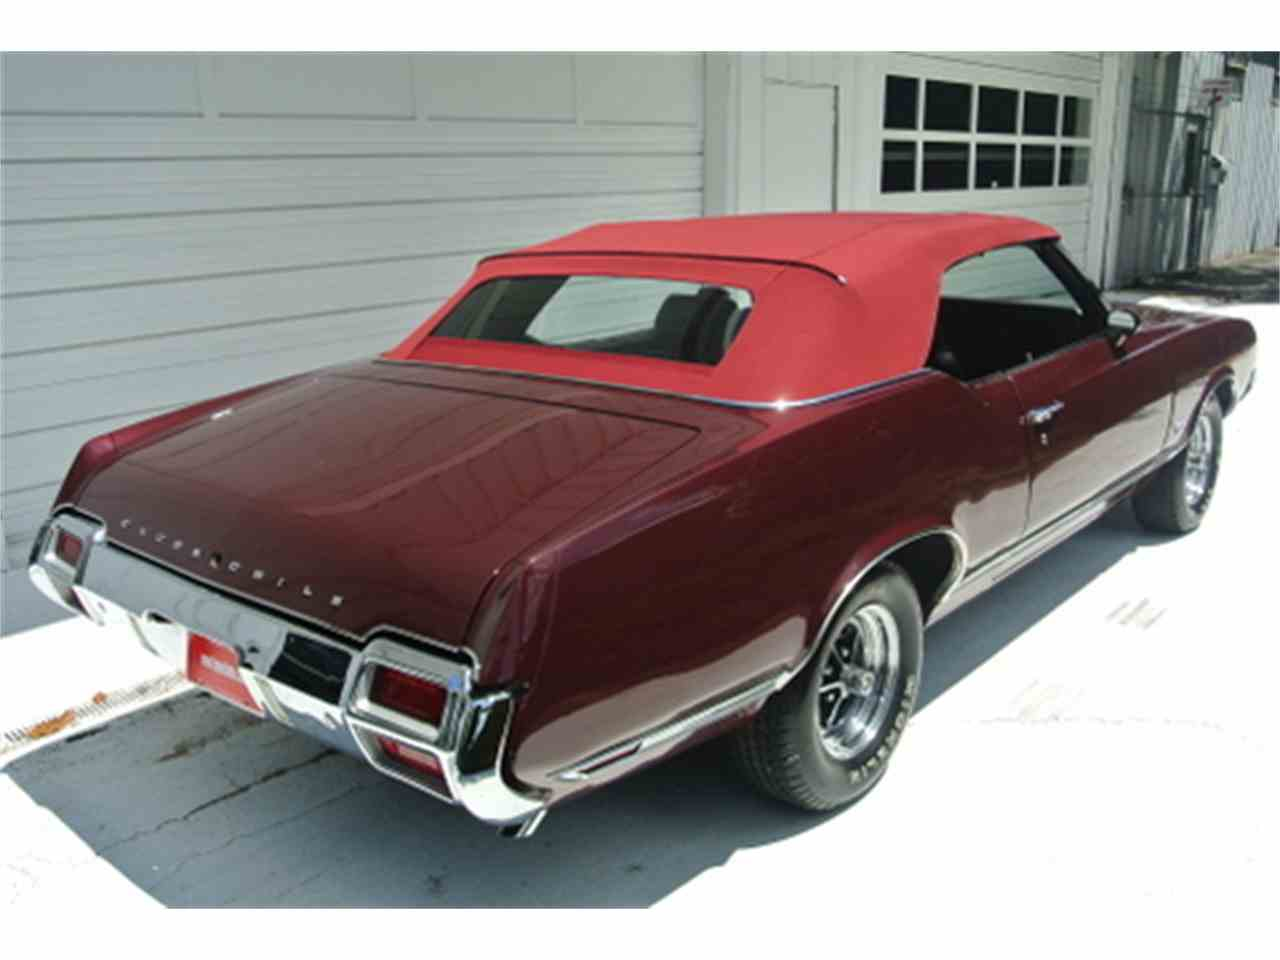 Large Picture of Classic 1971 Oldsmobile Cutlass Supreme located in Roswell Georgia - $34,950.00 - J43S